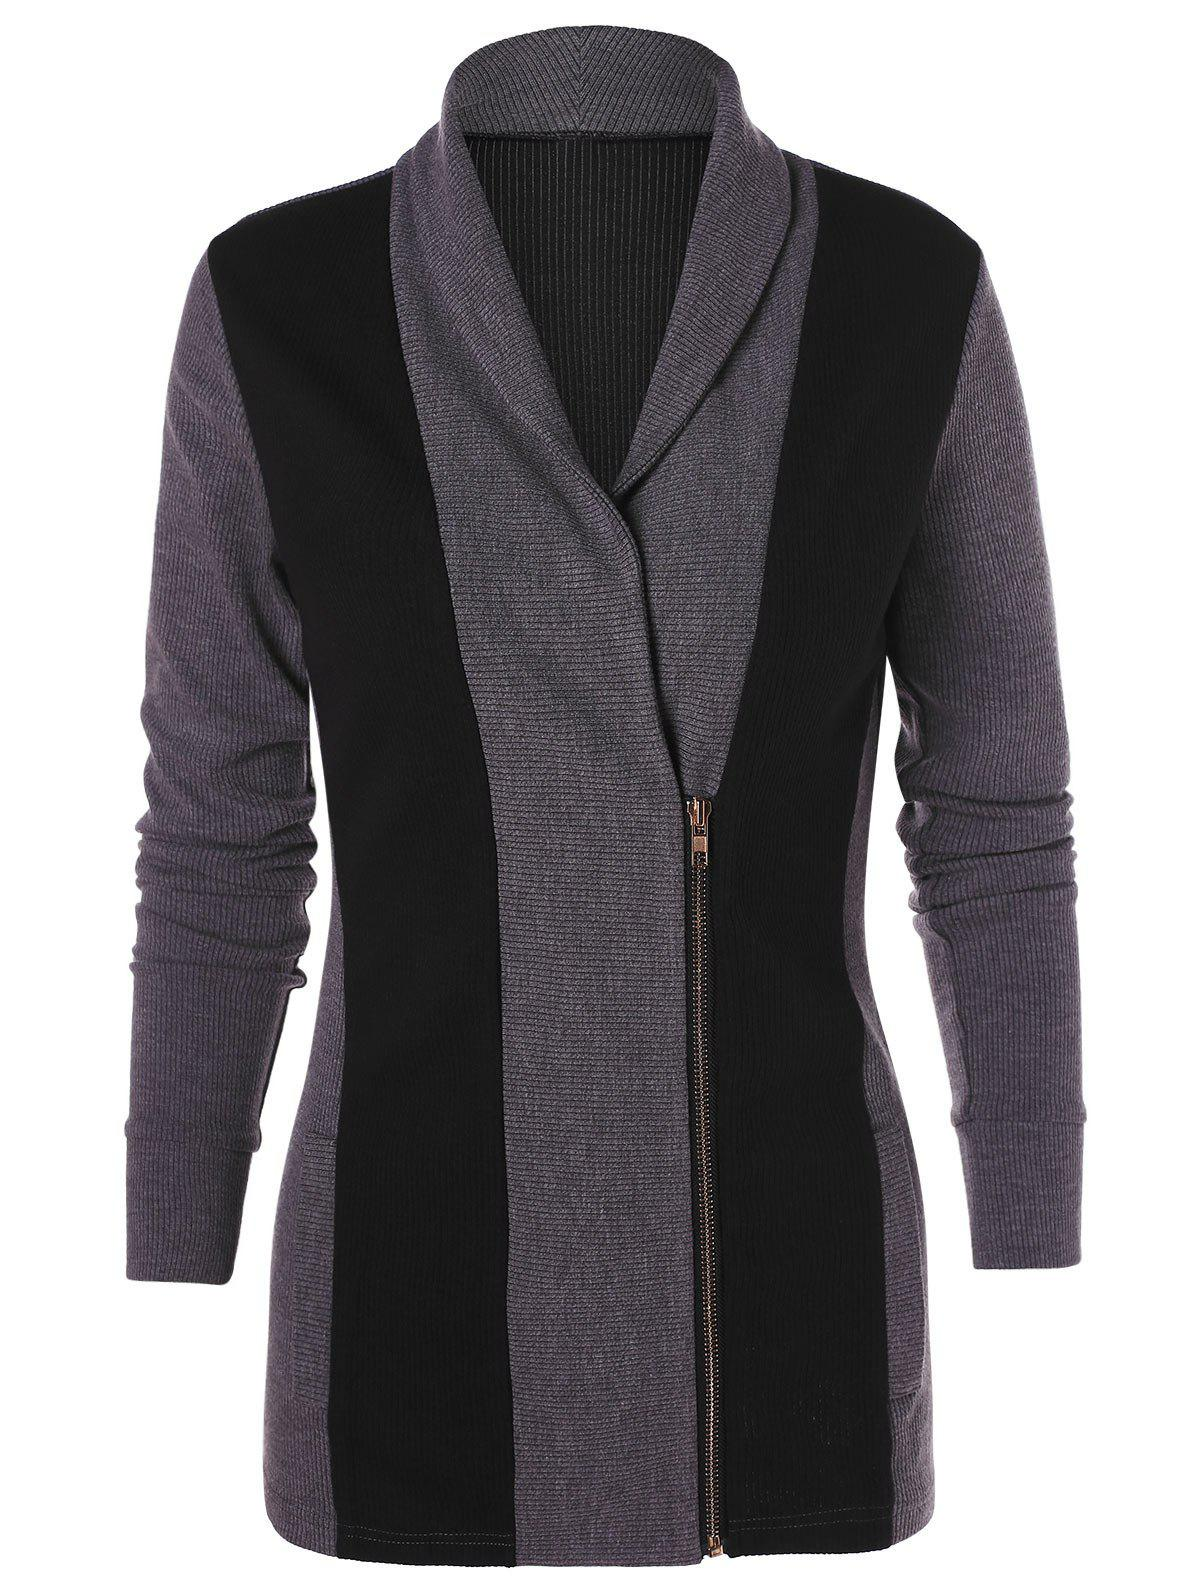 Online Two Tone Zip Up Knit Cardigan